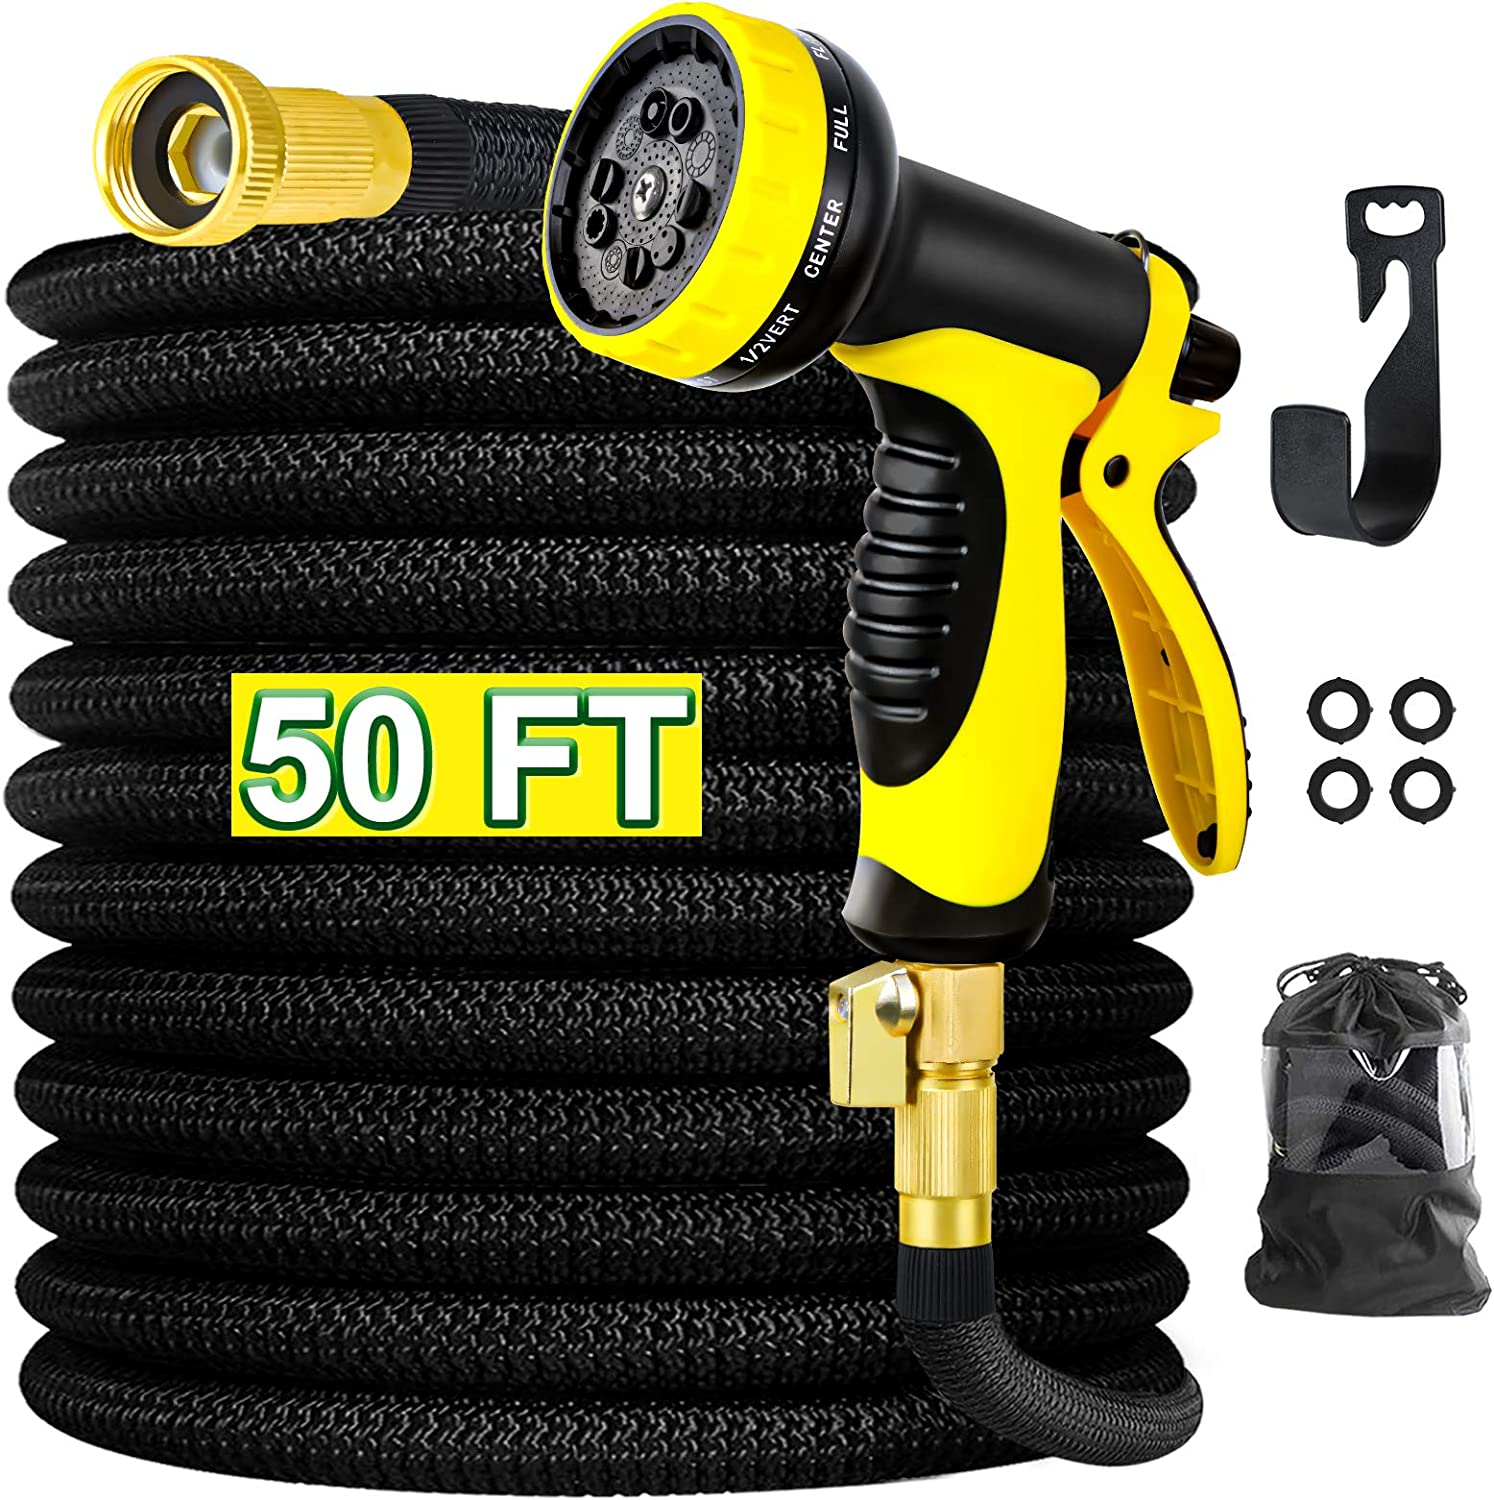 """Garden Hose, Abida 50FT Expandable Lightweight Water Hose with 10-Pattern Hose Nozzle, Leakproof Hose with 3/4"""" Solid Brass Connectors, Flexible Hose for Washing and Watering"""